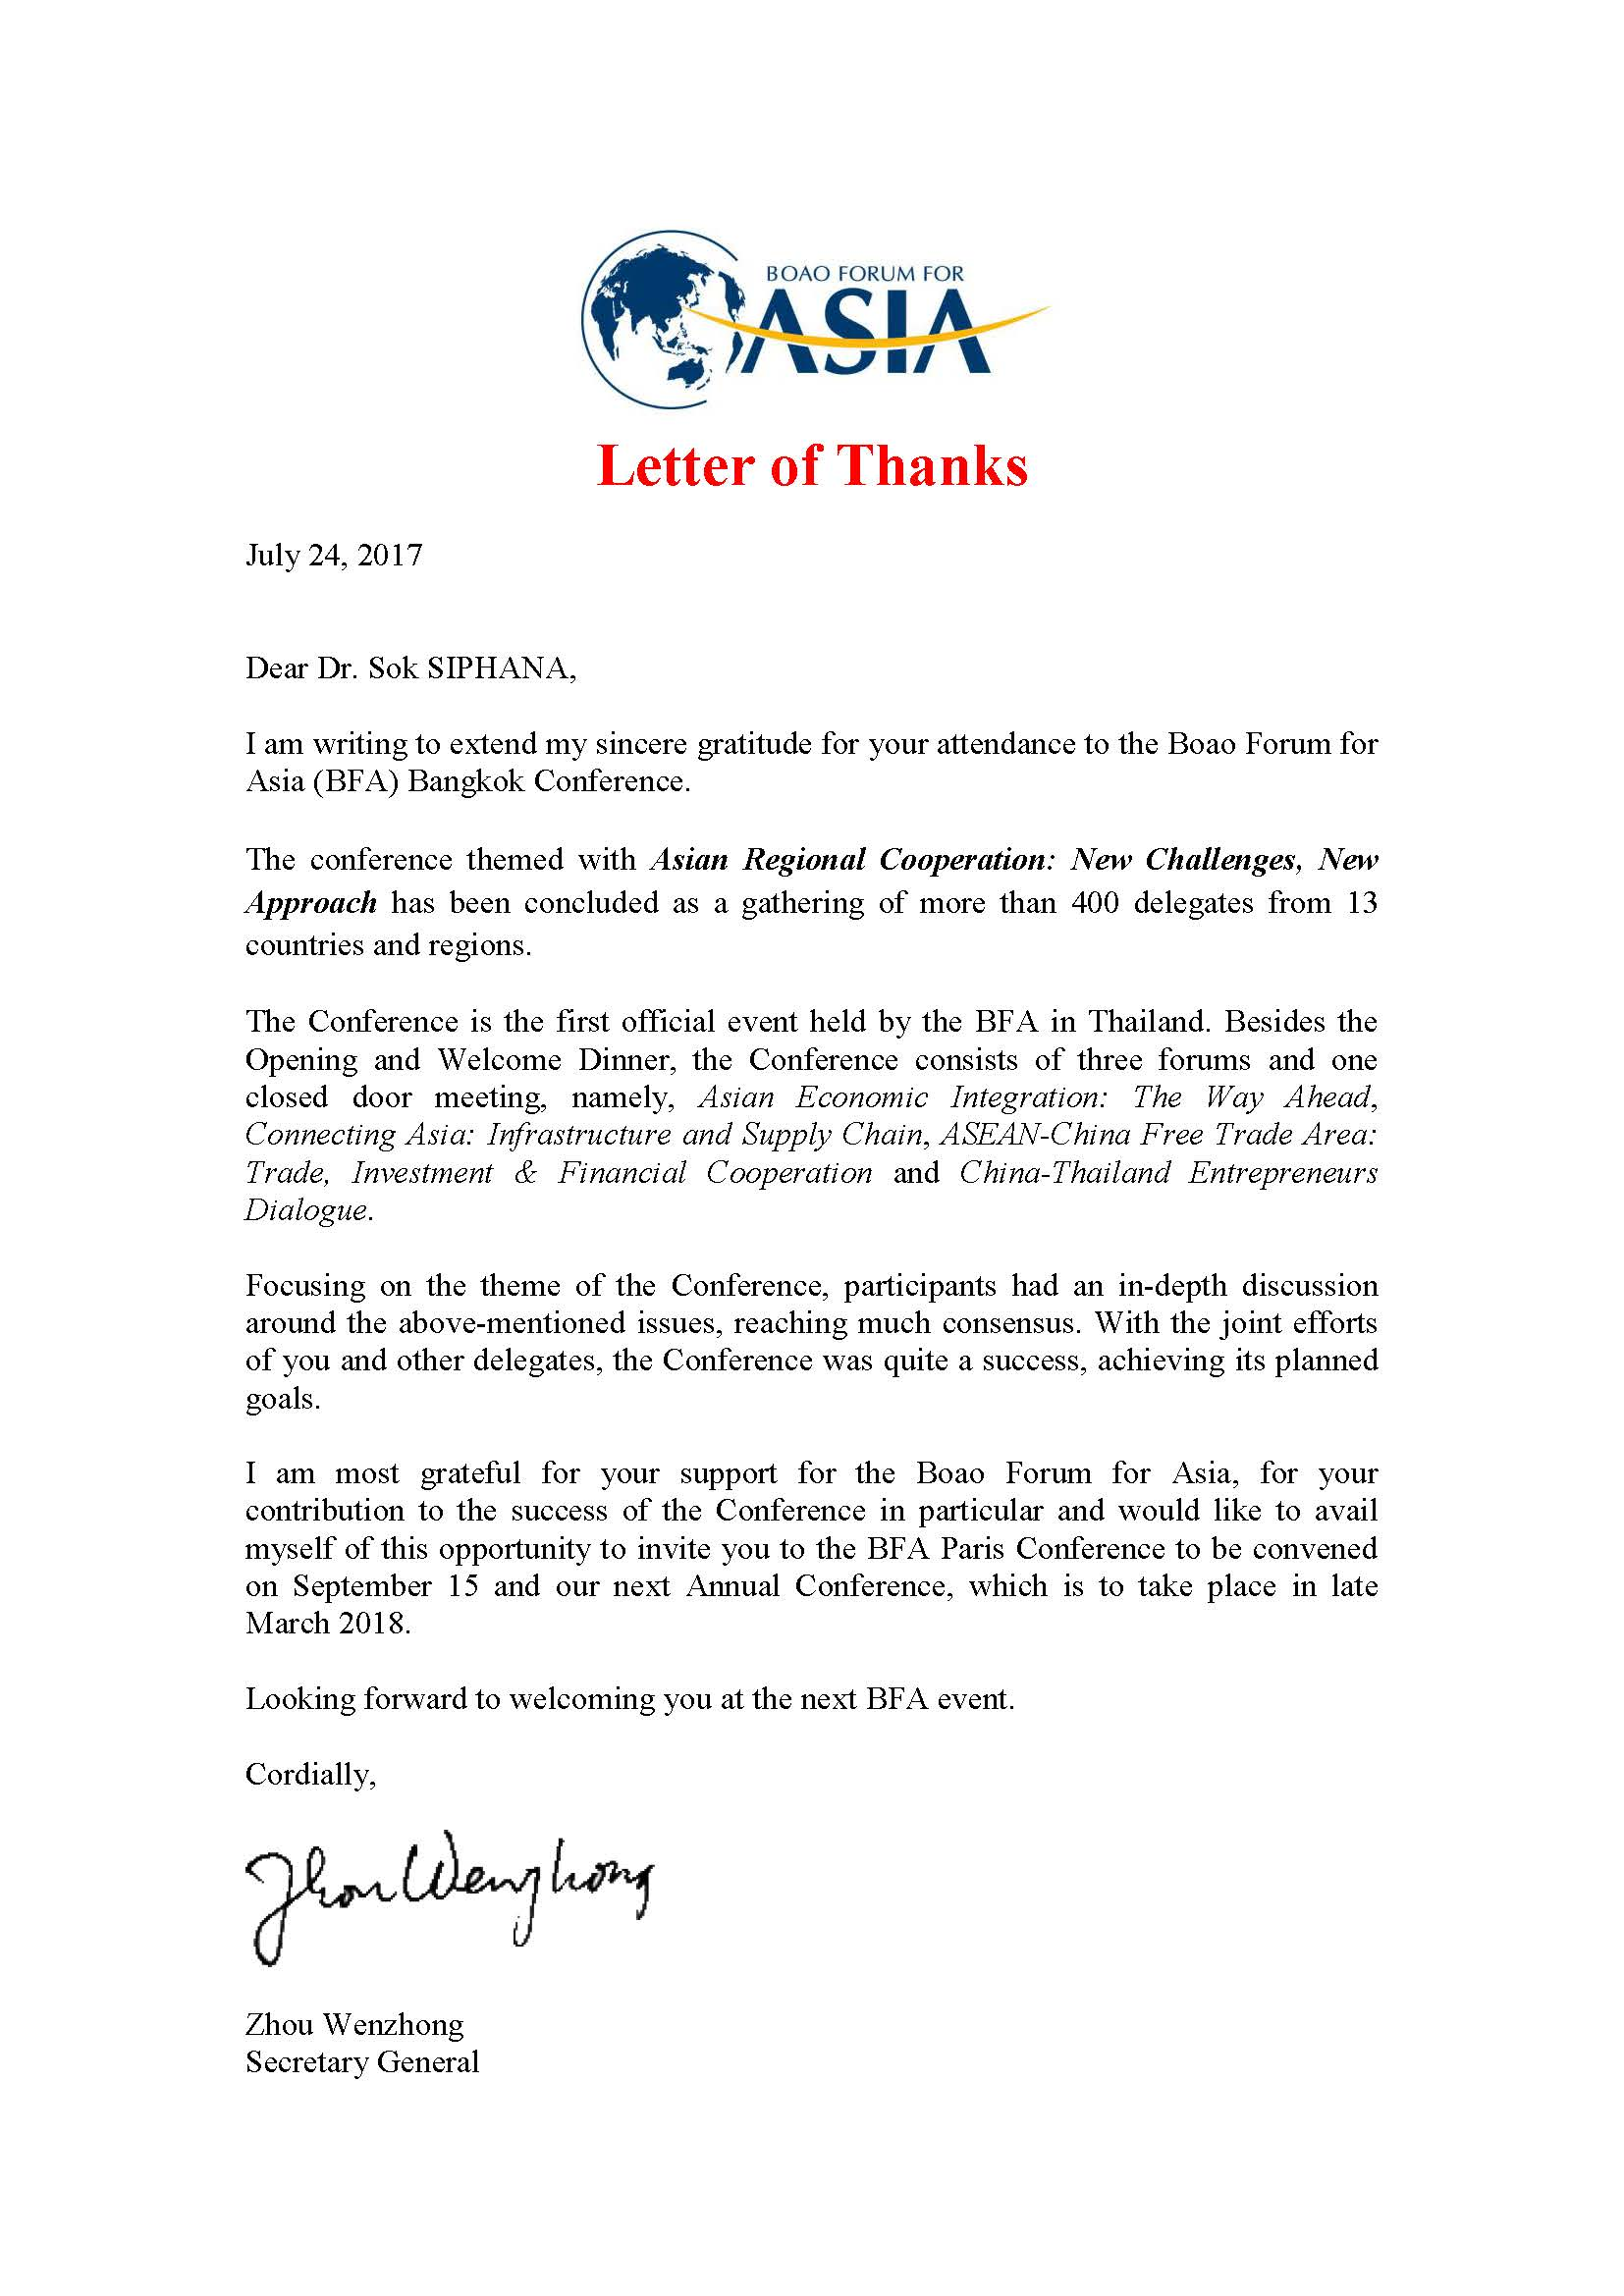 Awards appointments testimonials and appearances dr sok siphana thank you letter from boao forum for asia may 05 2017 aljukfo Gallery